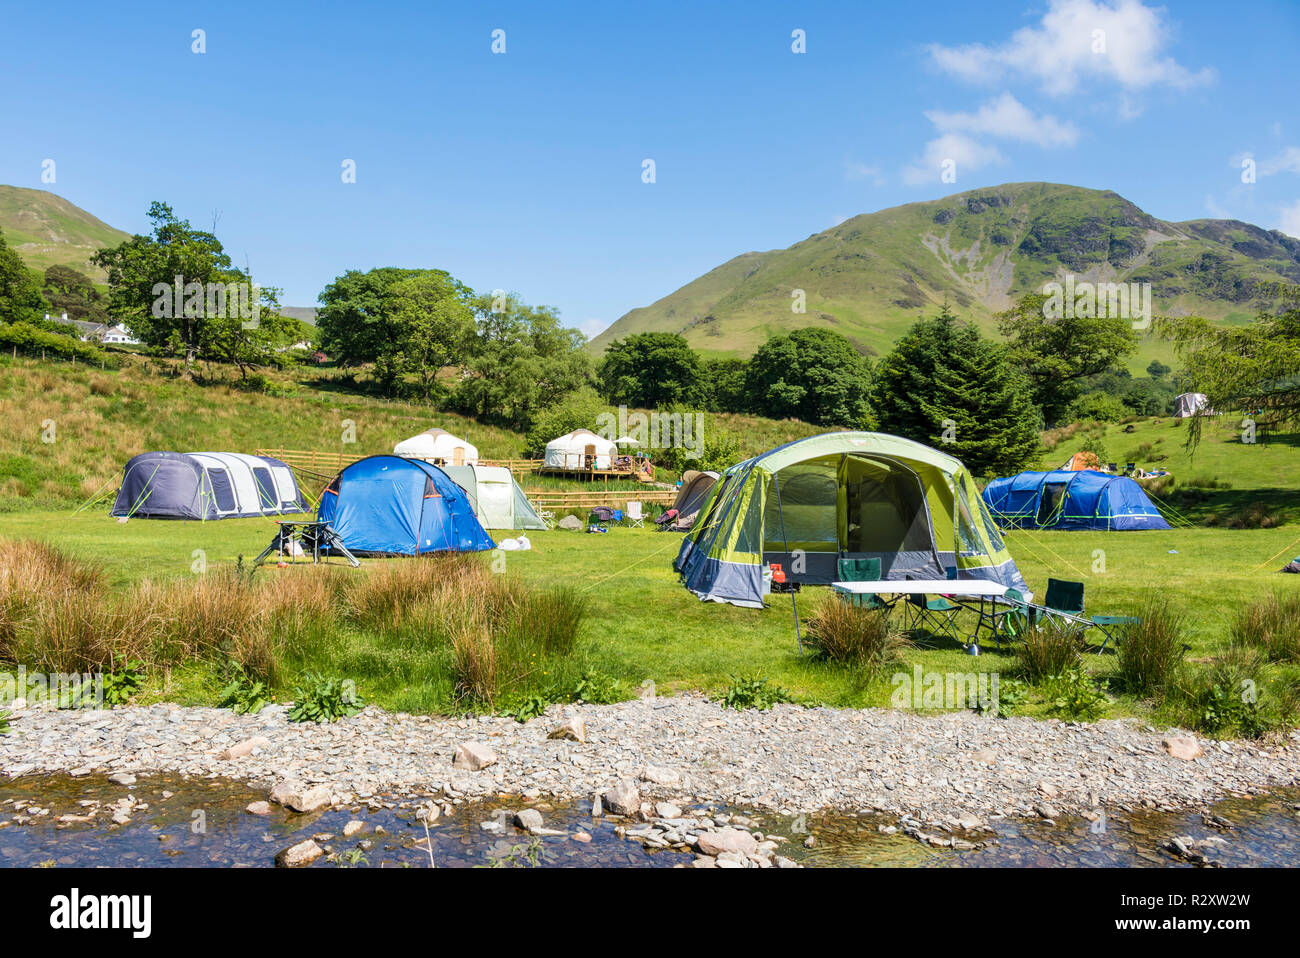 Lake District UK Buttermere Lake District national park People camping at Syke Farm Campsite Buttermere Cumbria England UK GB Europe - Stock Image